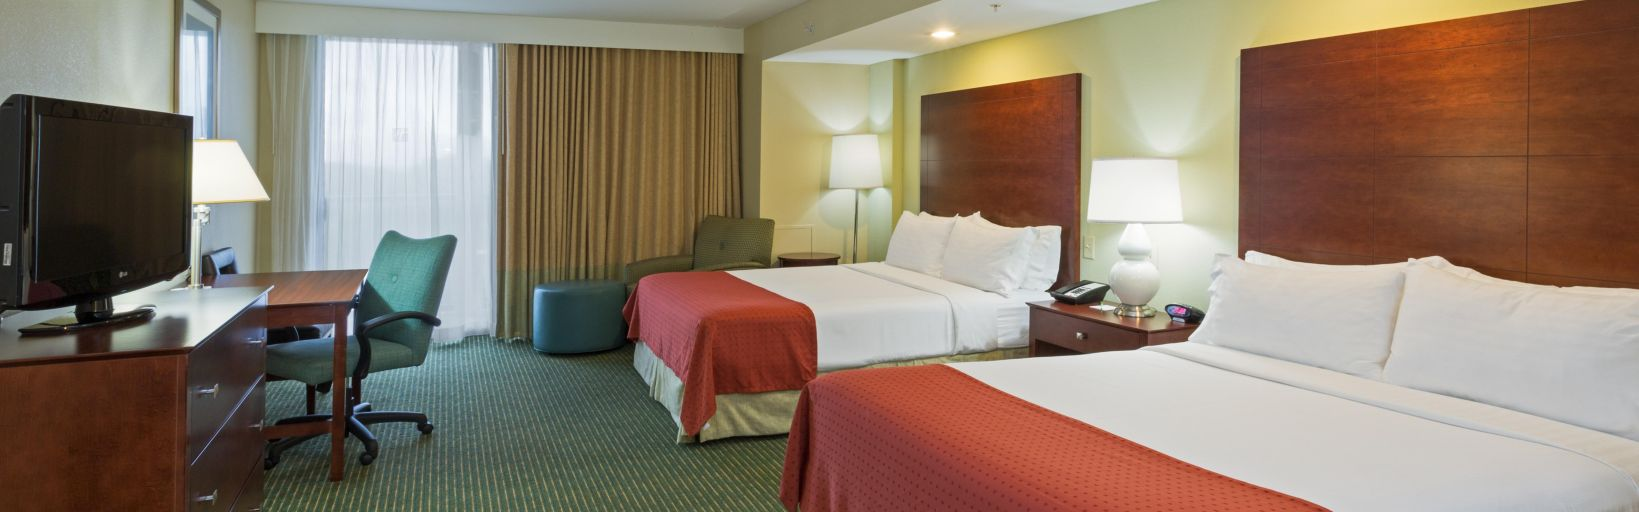 downtown disney orlando hotel holiday inn lake buena vista